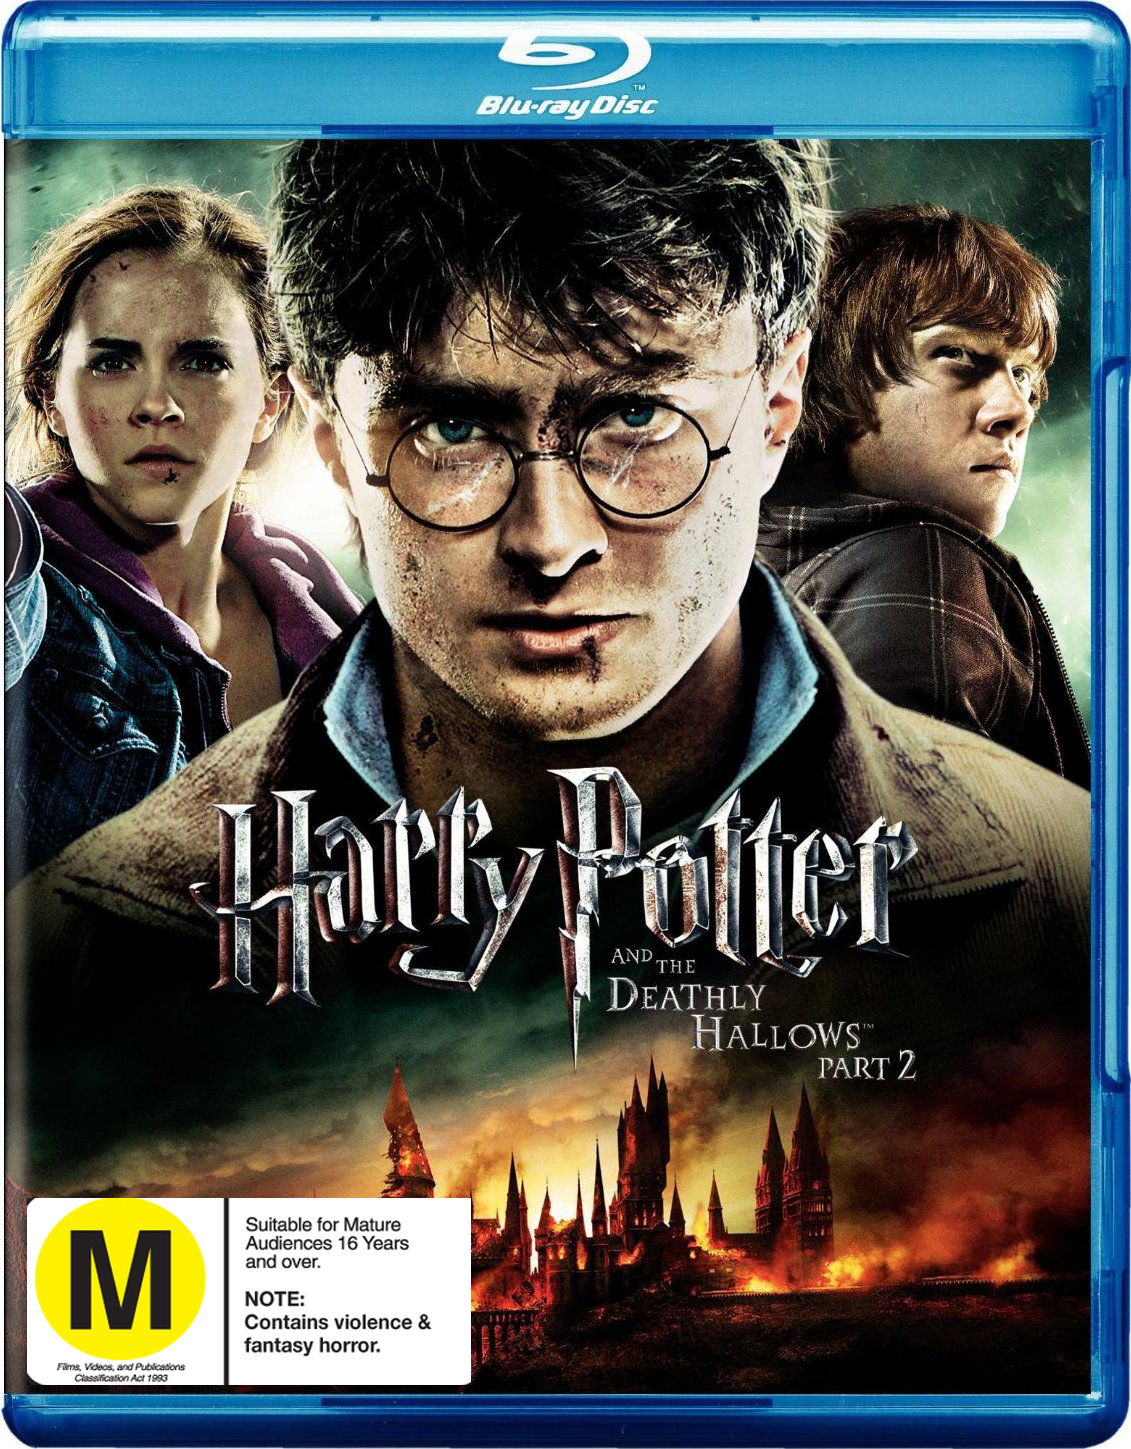 Harry Potter and the Deathly Hallows - Part 2 on Blu-ray image